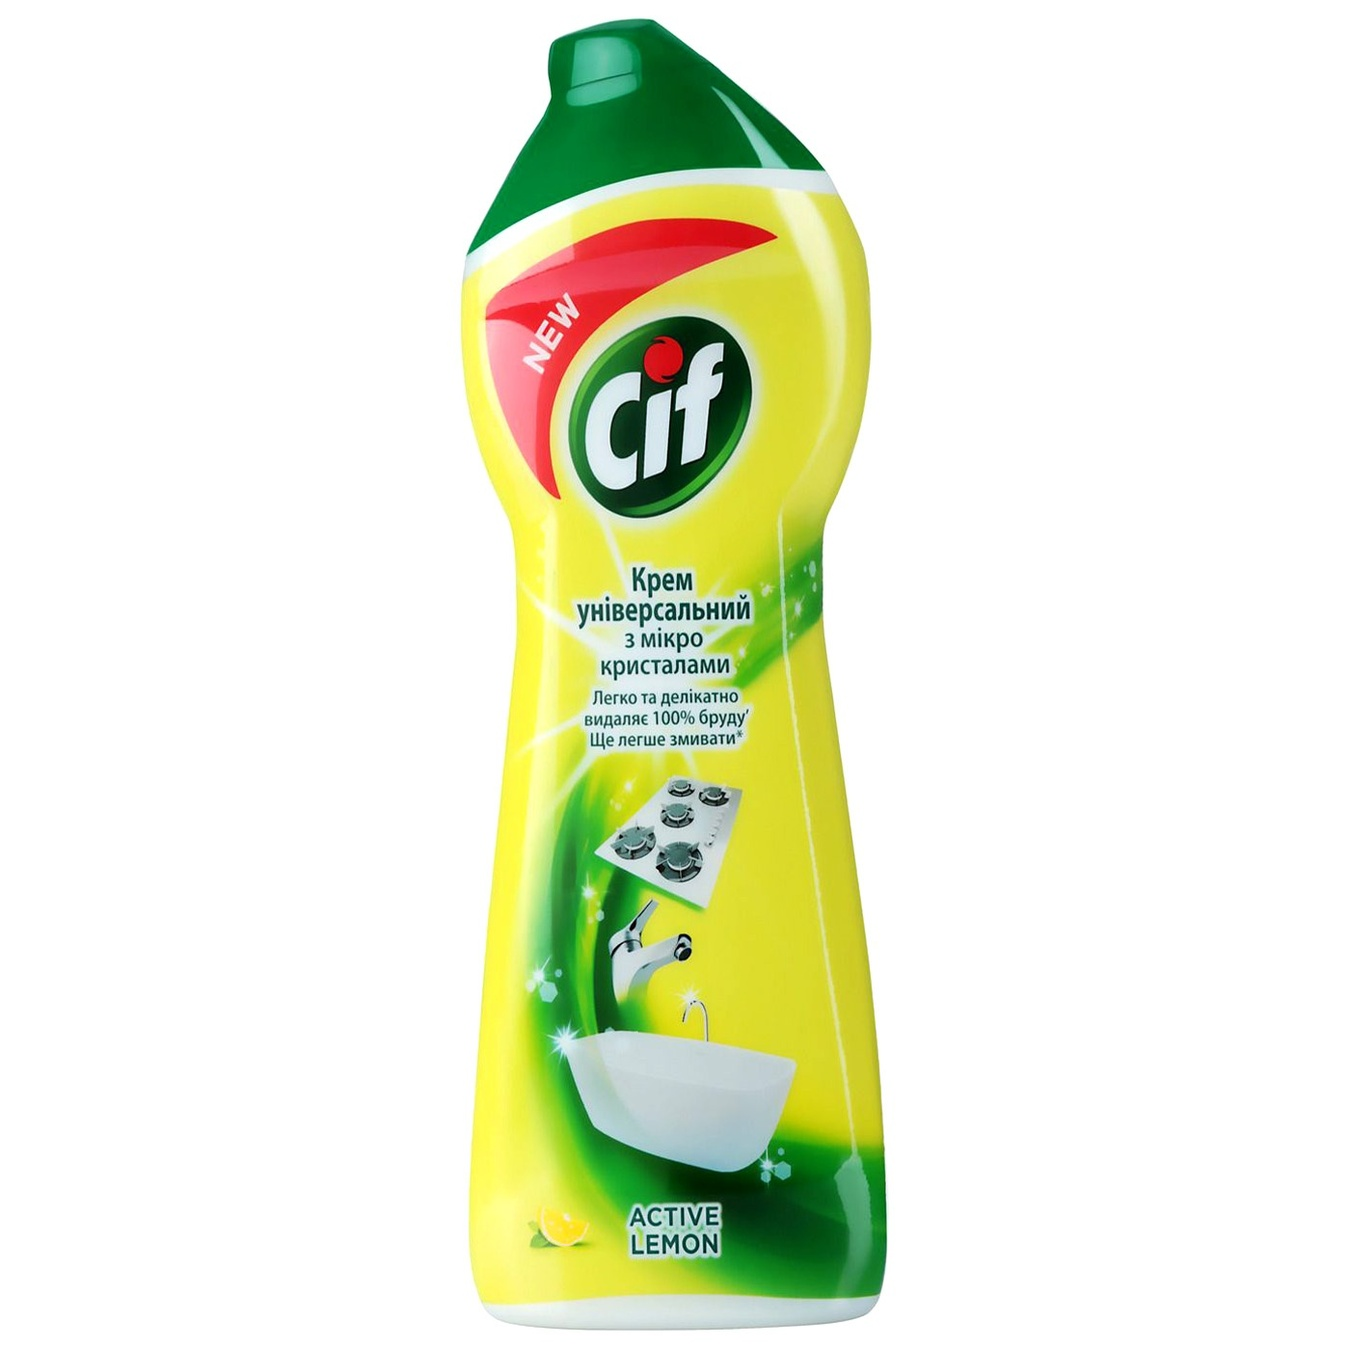 Cream cleaner Cif Active Lemon 250ml → Household → Household chemicals → For cleaning